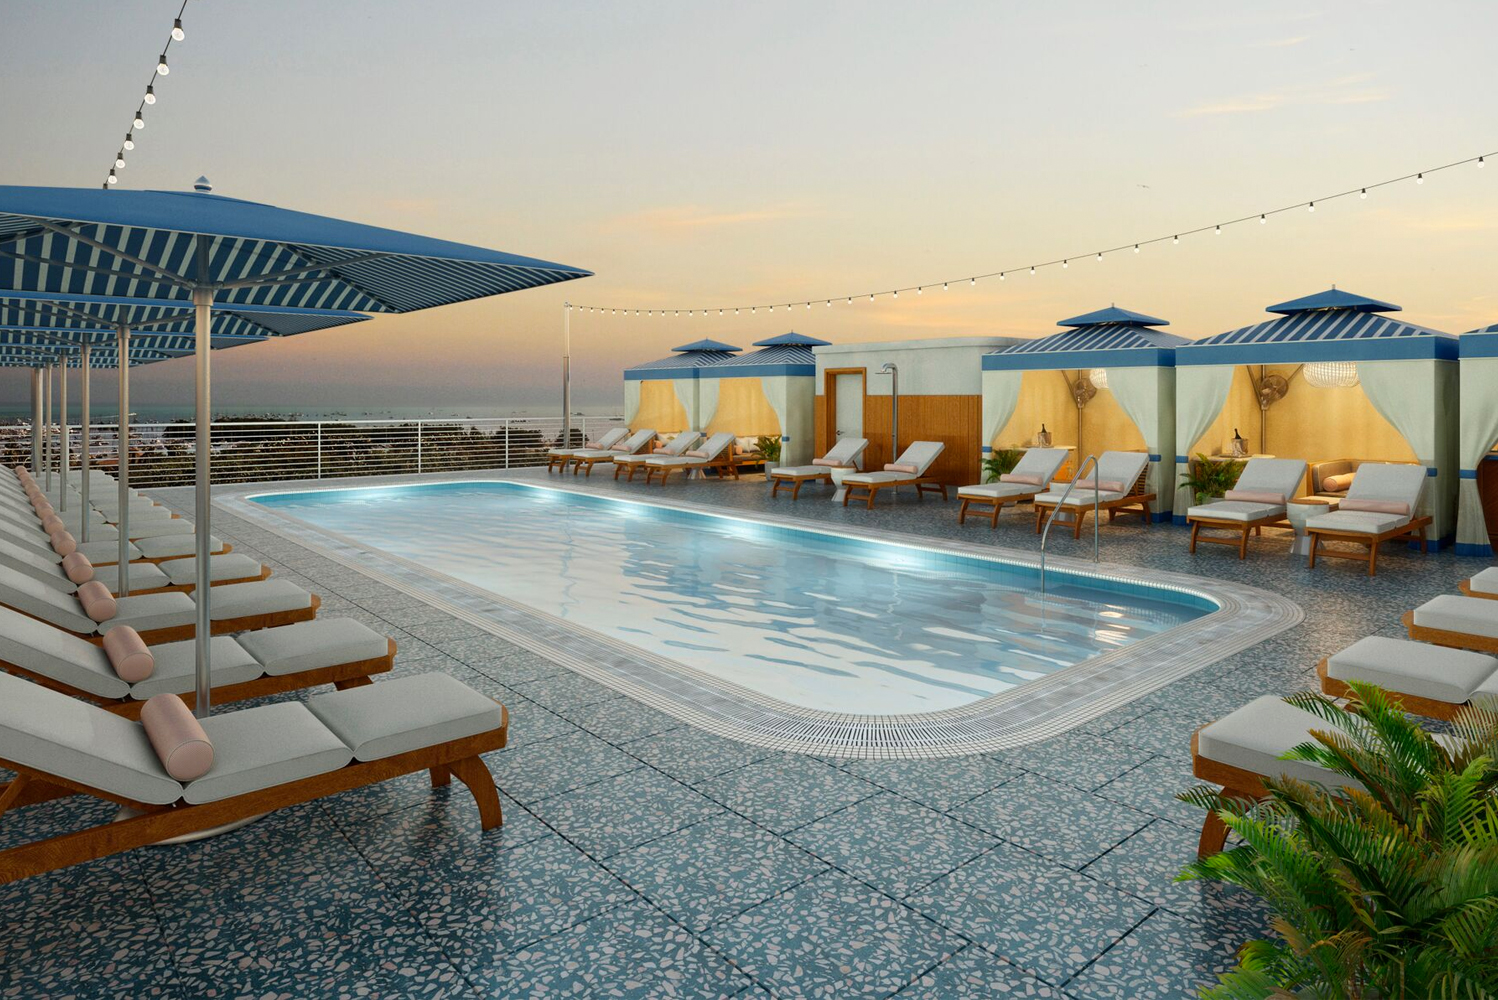 Other property amenities will include a rooftop pool and pool deck with private cabanas and a pool bar.